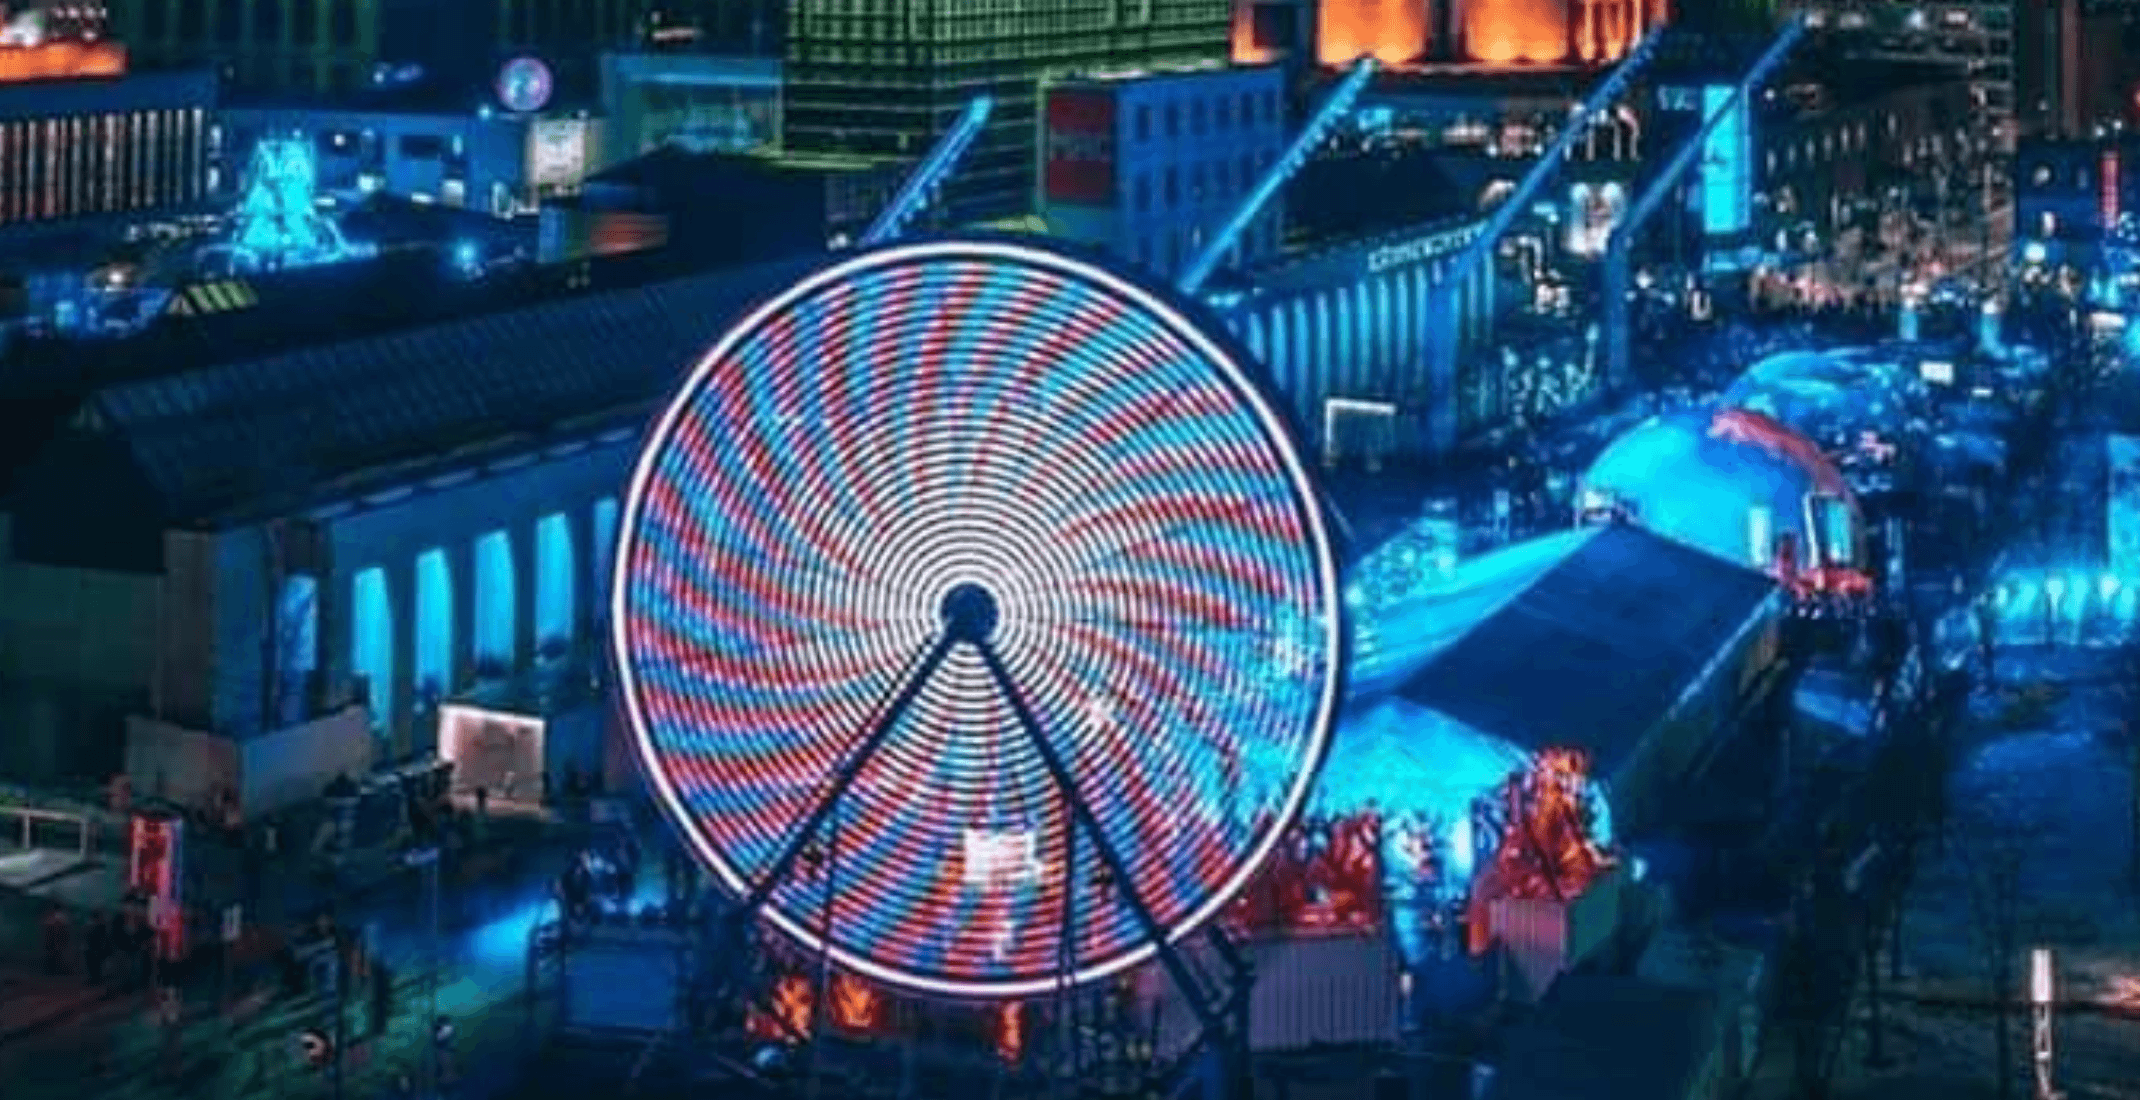 You can ride this neon Ferris wheel for FREE starting next week (PHOTOS)